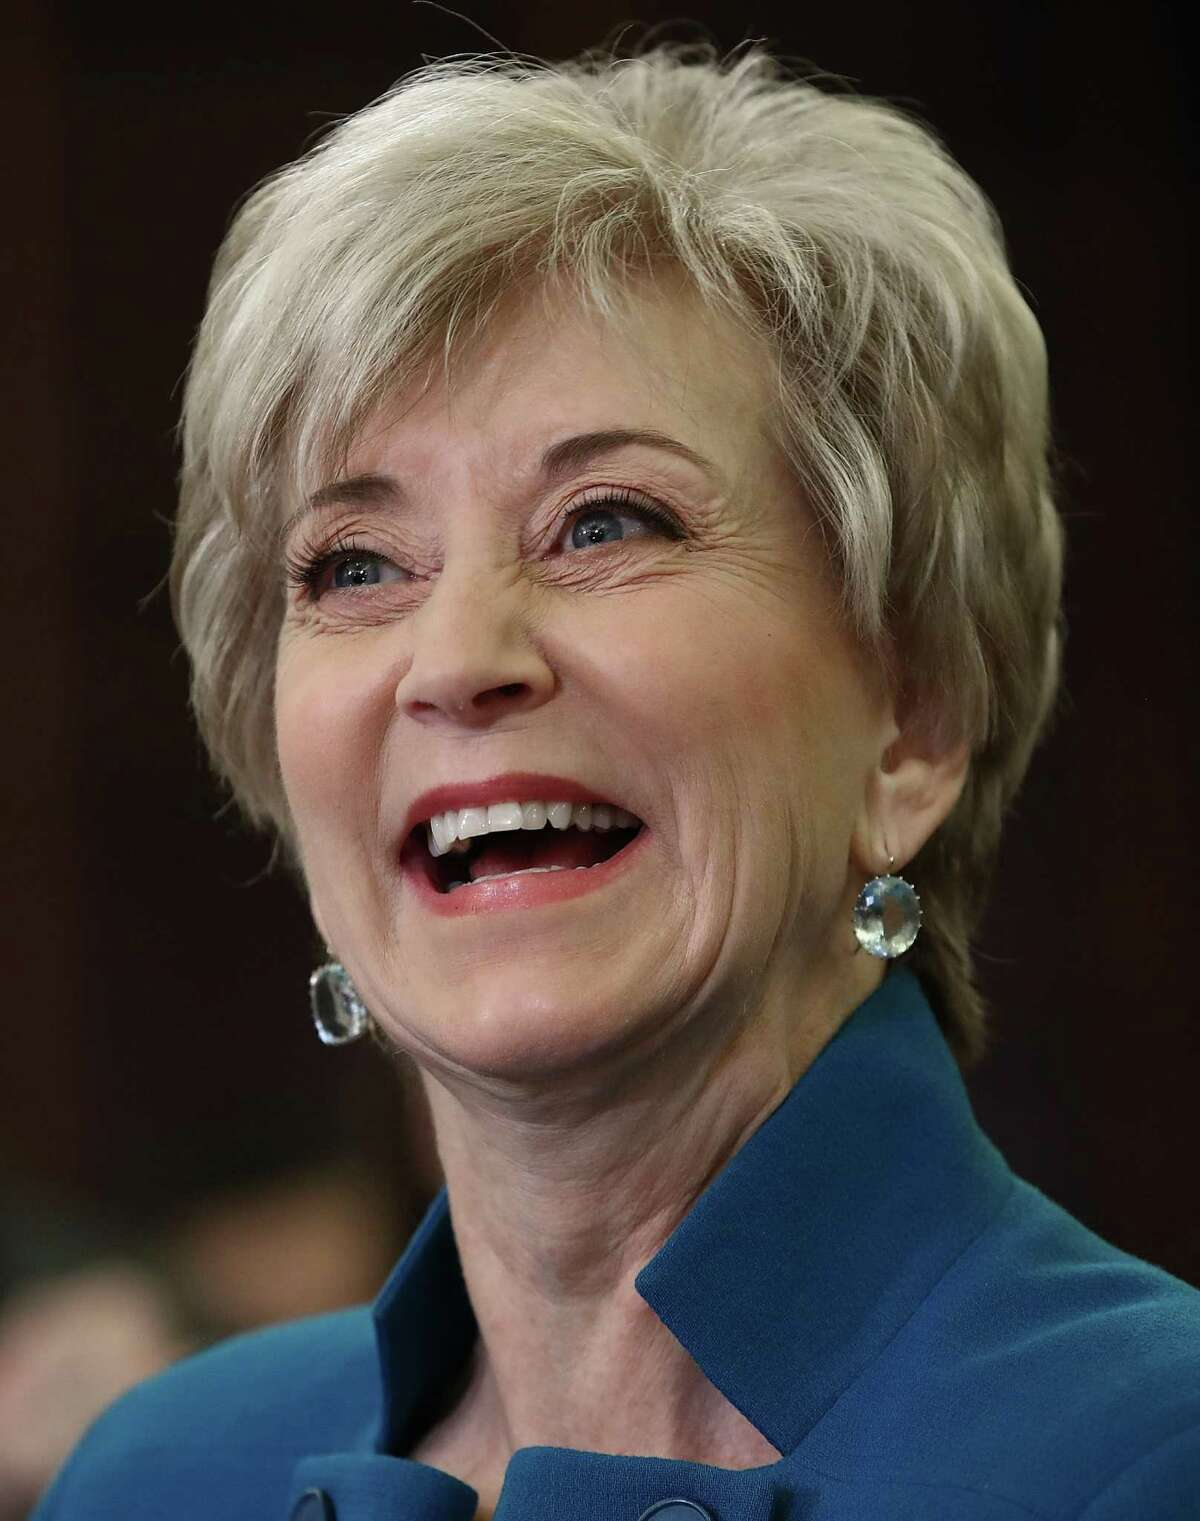 Linda McMahon, U.S. President Donald Trump's nominee to be administrator of the Small Business Administration testifies before the Senate Small Business and Entrepreneurship Committee January 24, 2017 in Washington, DC. The committee heard testimony on McMahon's nomination to the position.